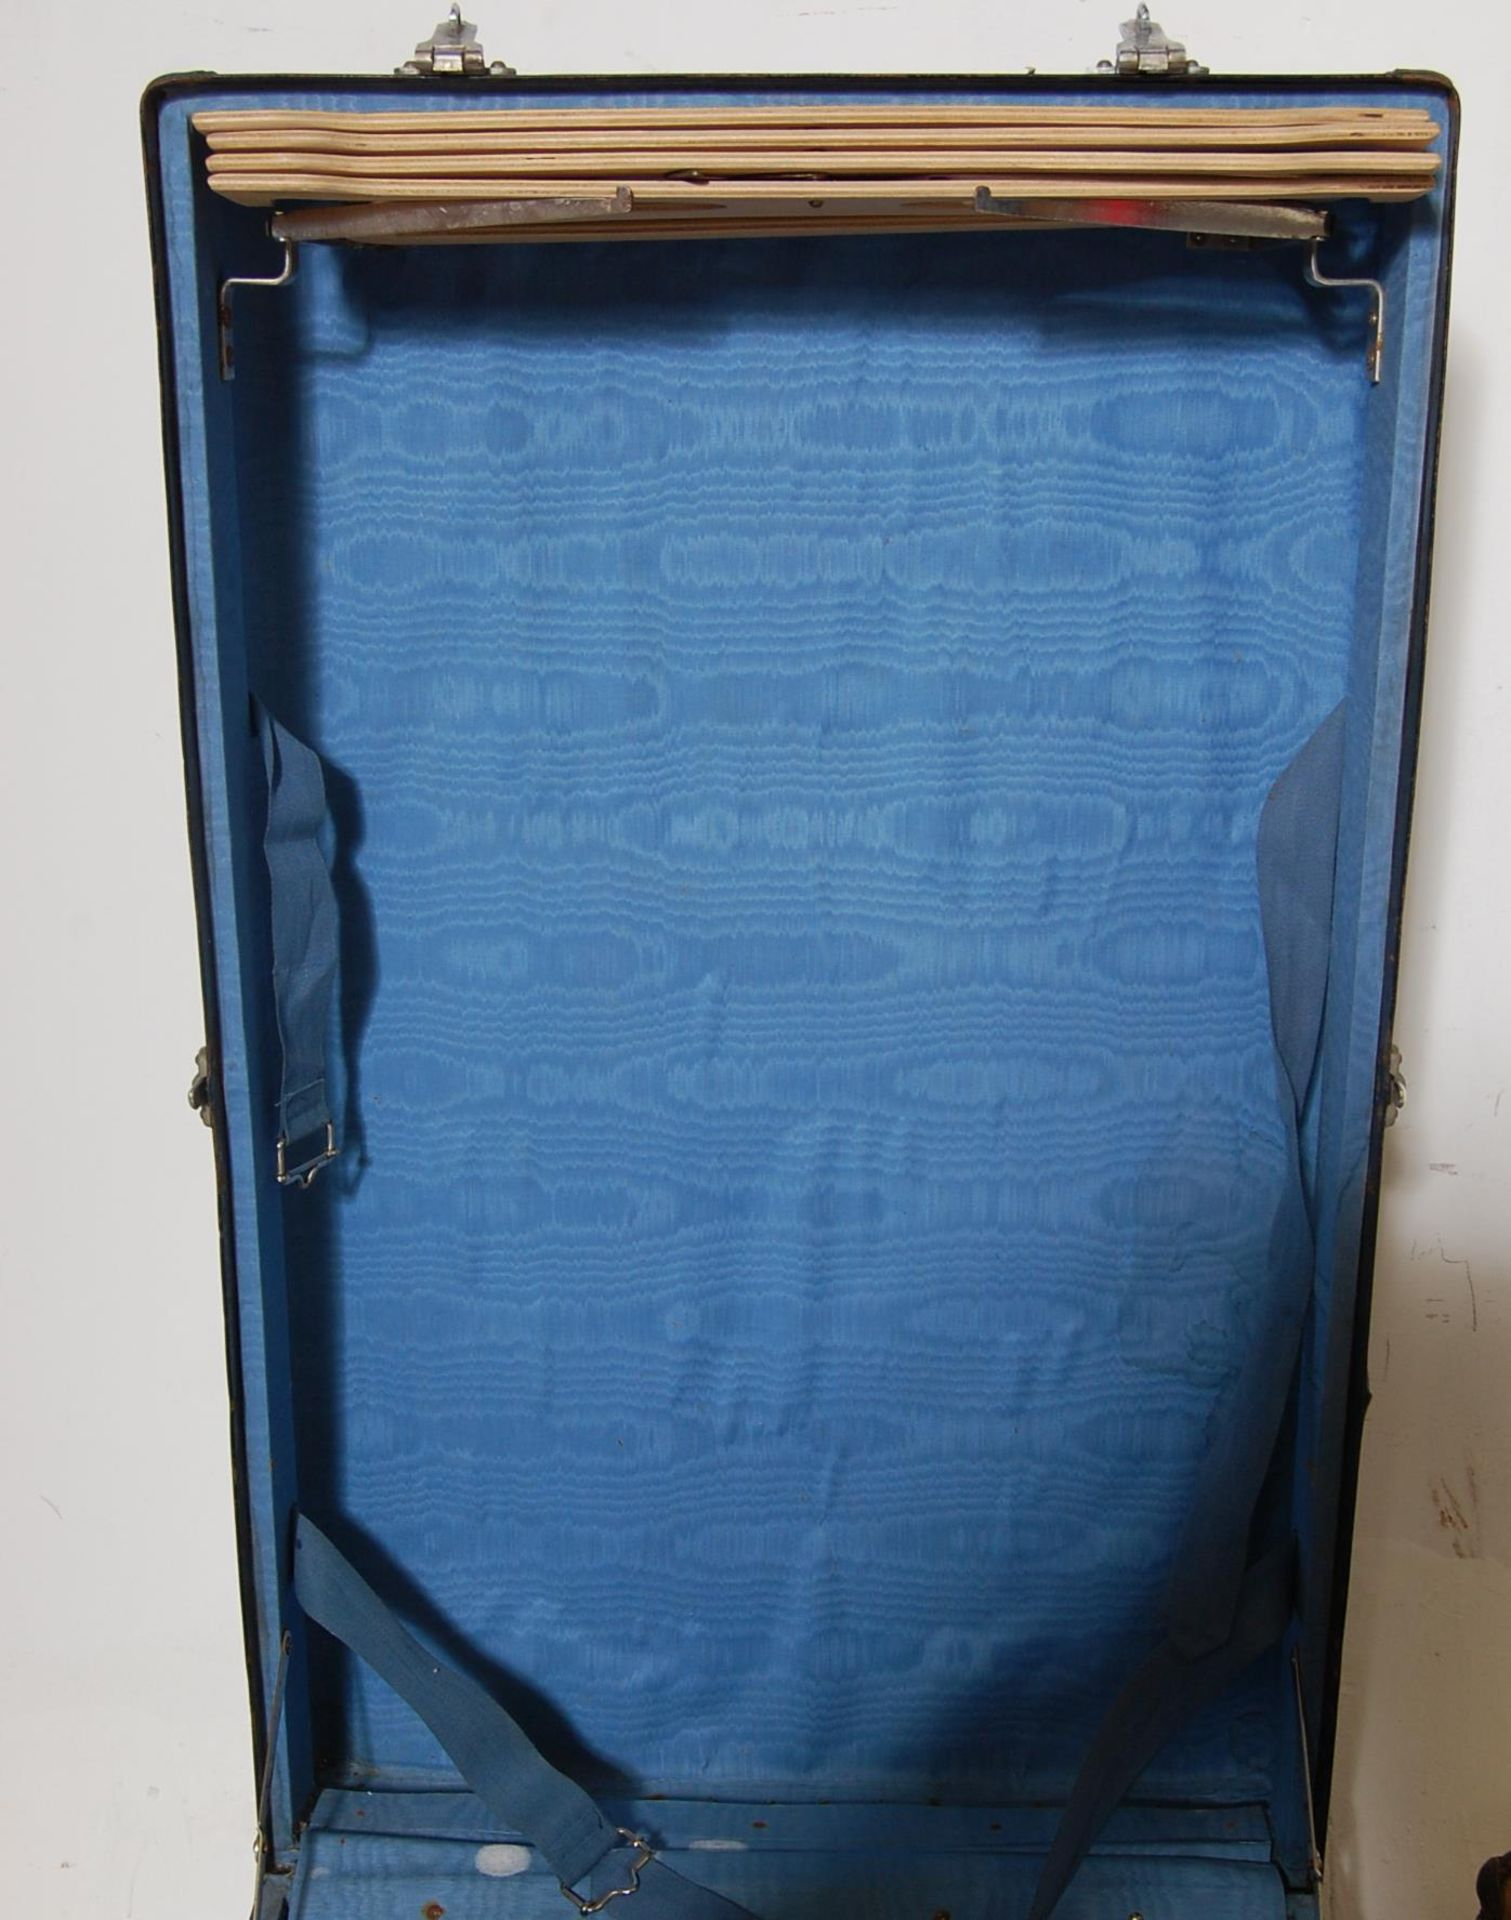 COLLECTION OF THREE EARLY 20TH CENTURY STEAMER TRUNKS - Image 8 of 12